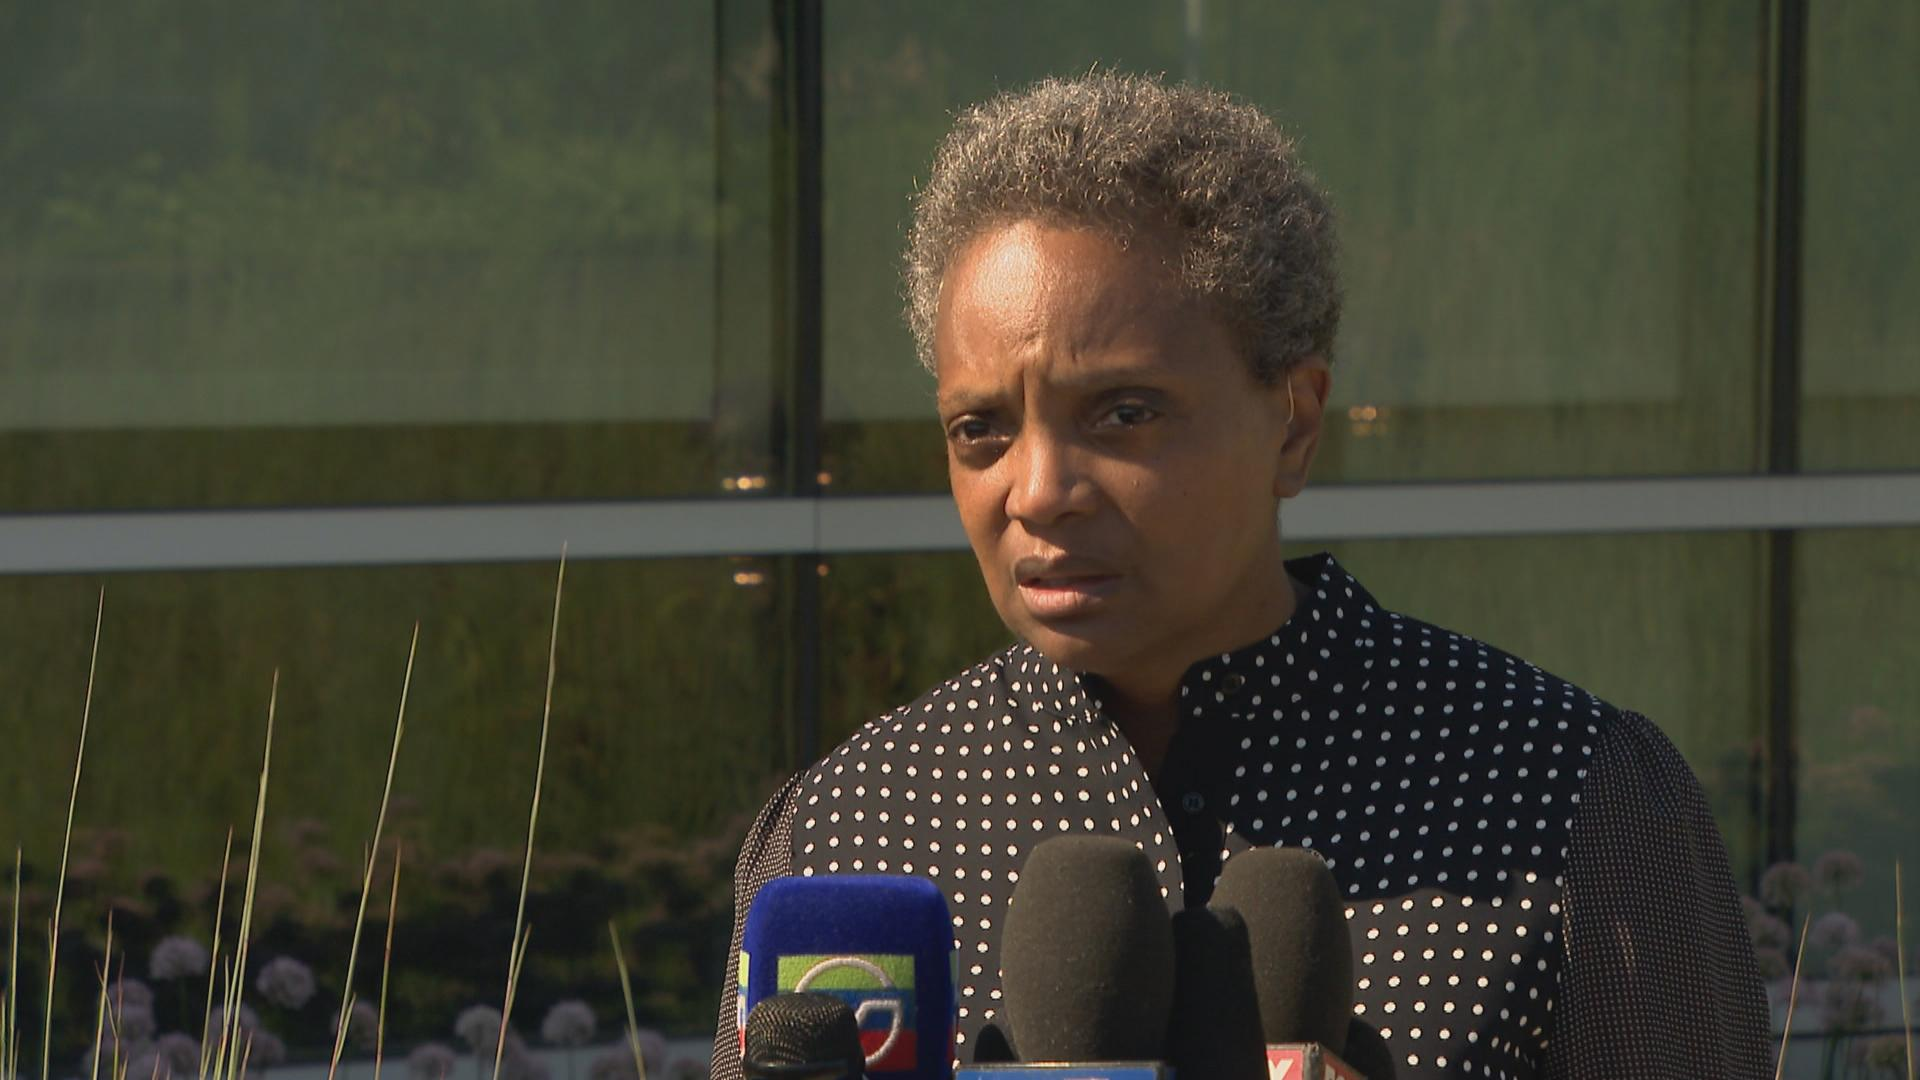 """We have to stand up and do a hell of a lot more than we've done in a very long time,"" Chicago Mayor Lori Lightfoot said Monday, Aug. 5, 2019, following a violent weekend in Chicago and mass shootings that left more than 30 people dead in El Paso, Texas, and Dayton, Ohio."